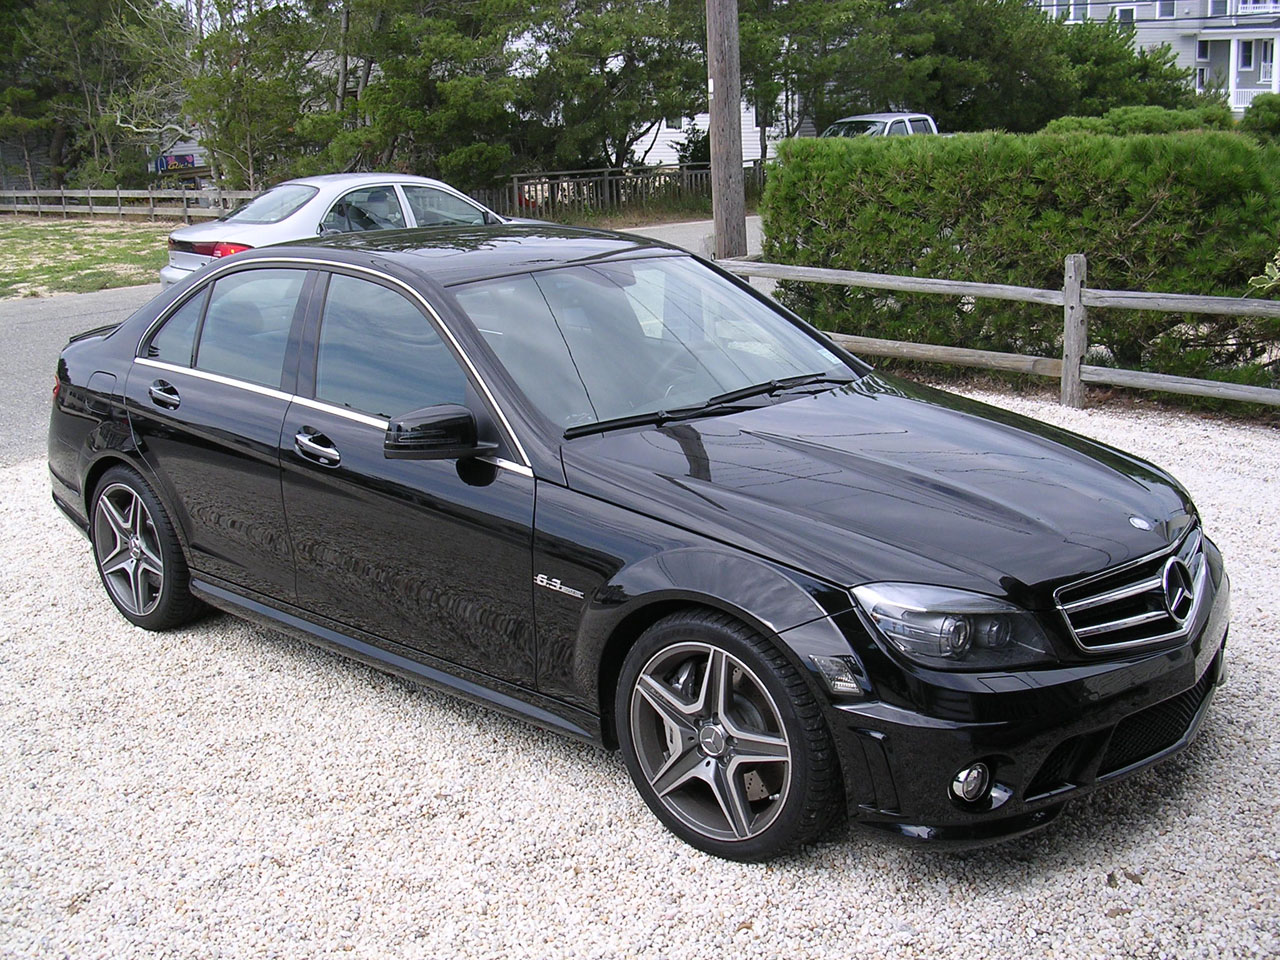 2010 Mercedes-Benz C63 AMG Eurocharged